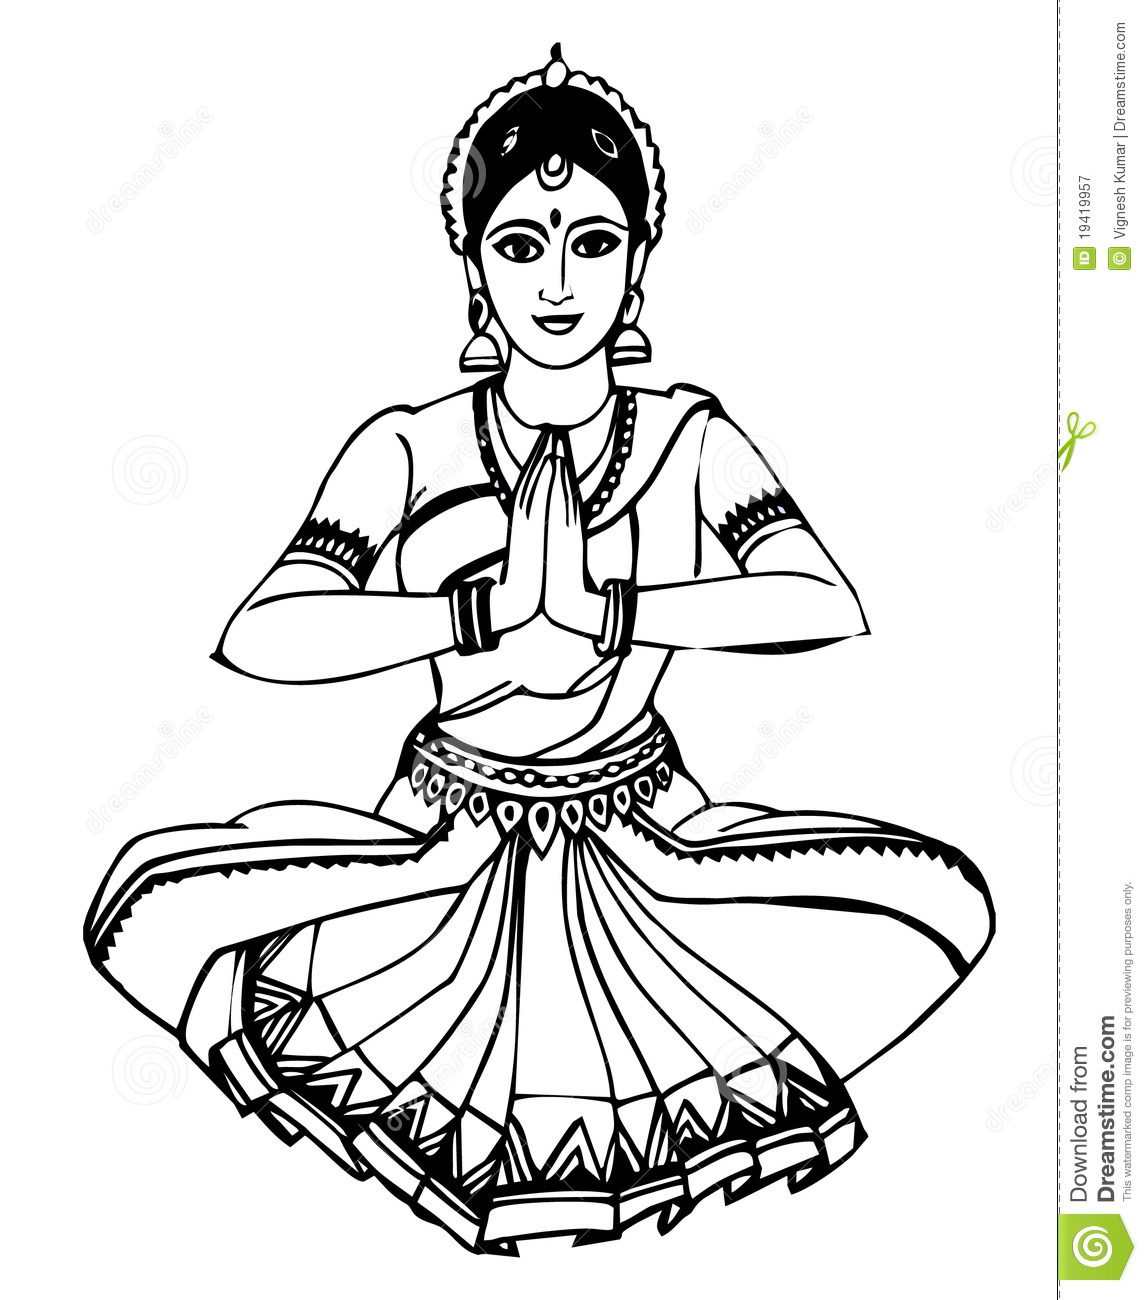 Indian dance clipart black and white.